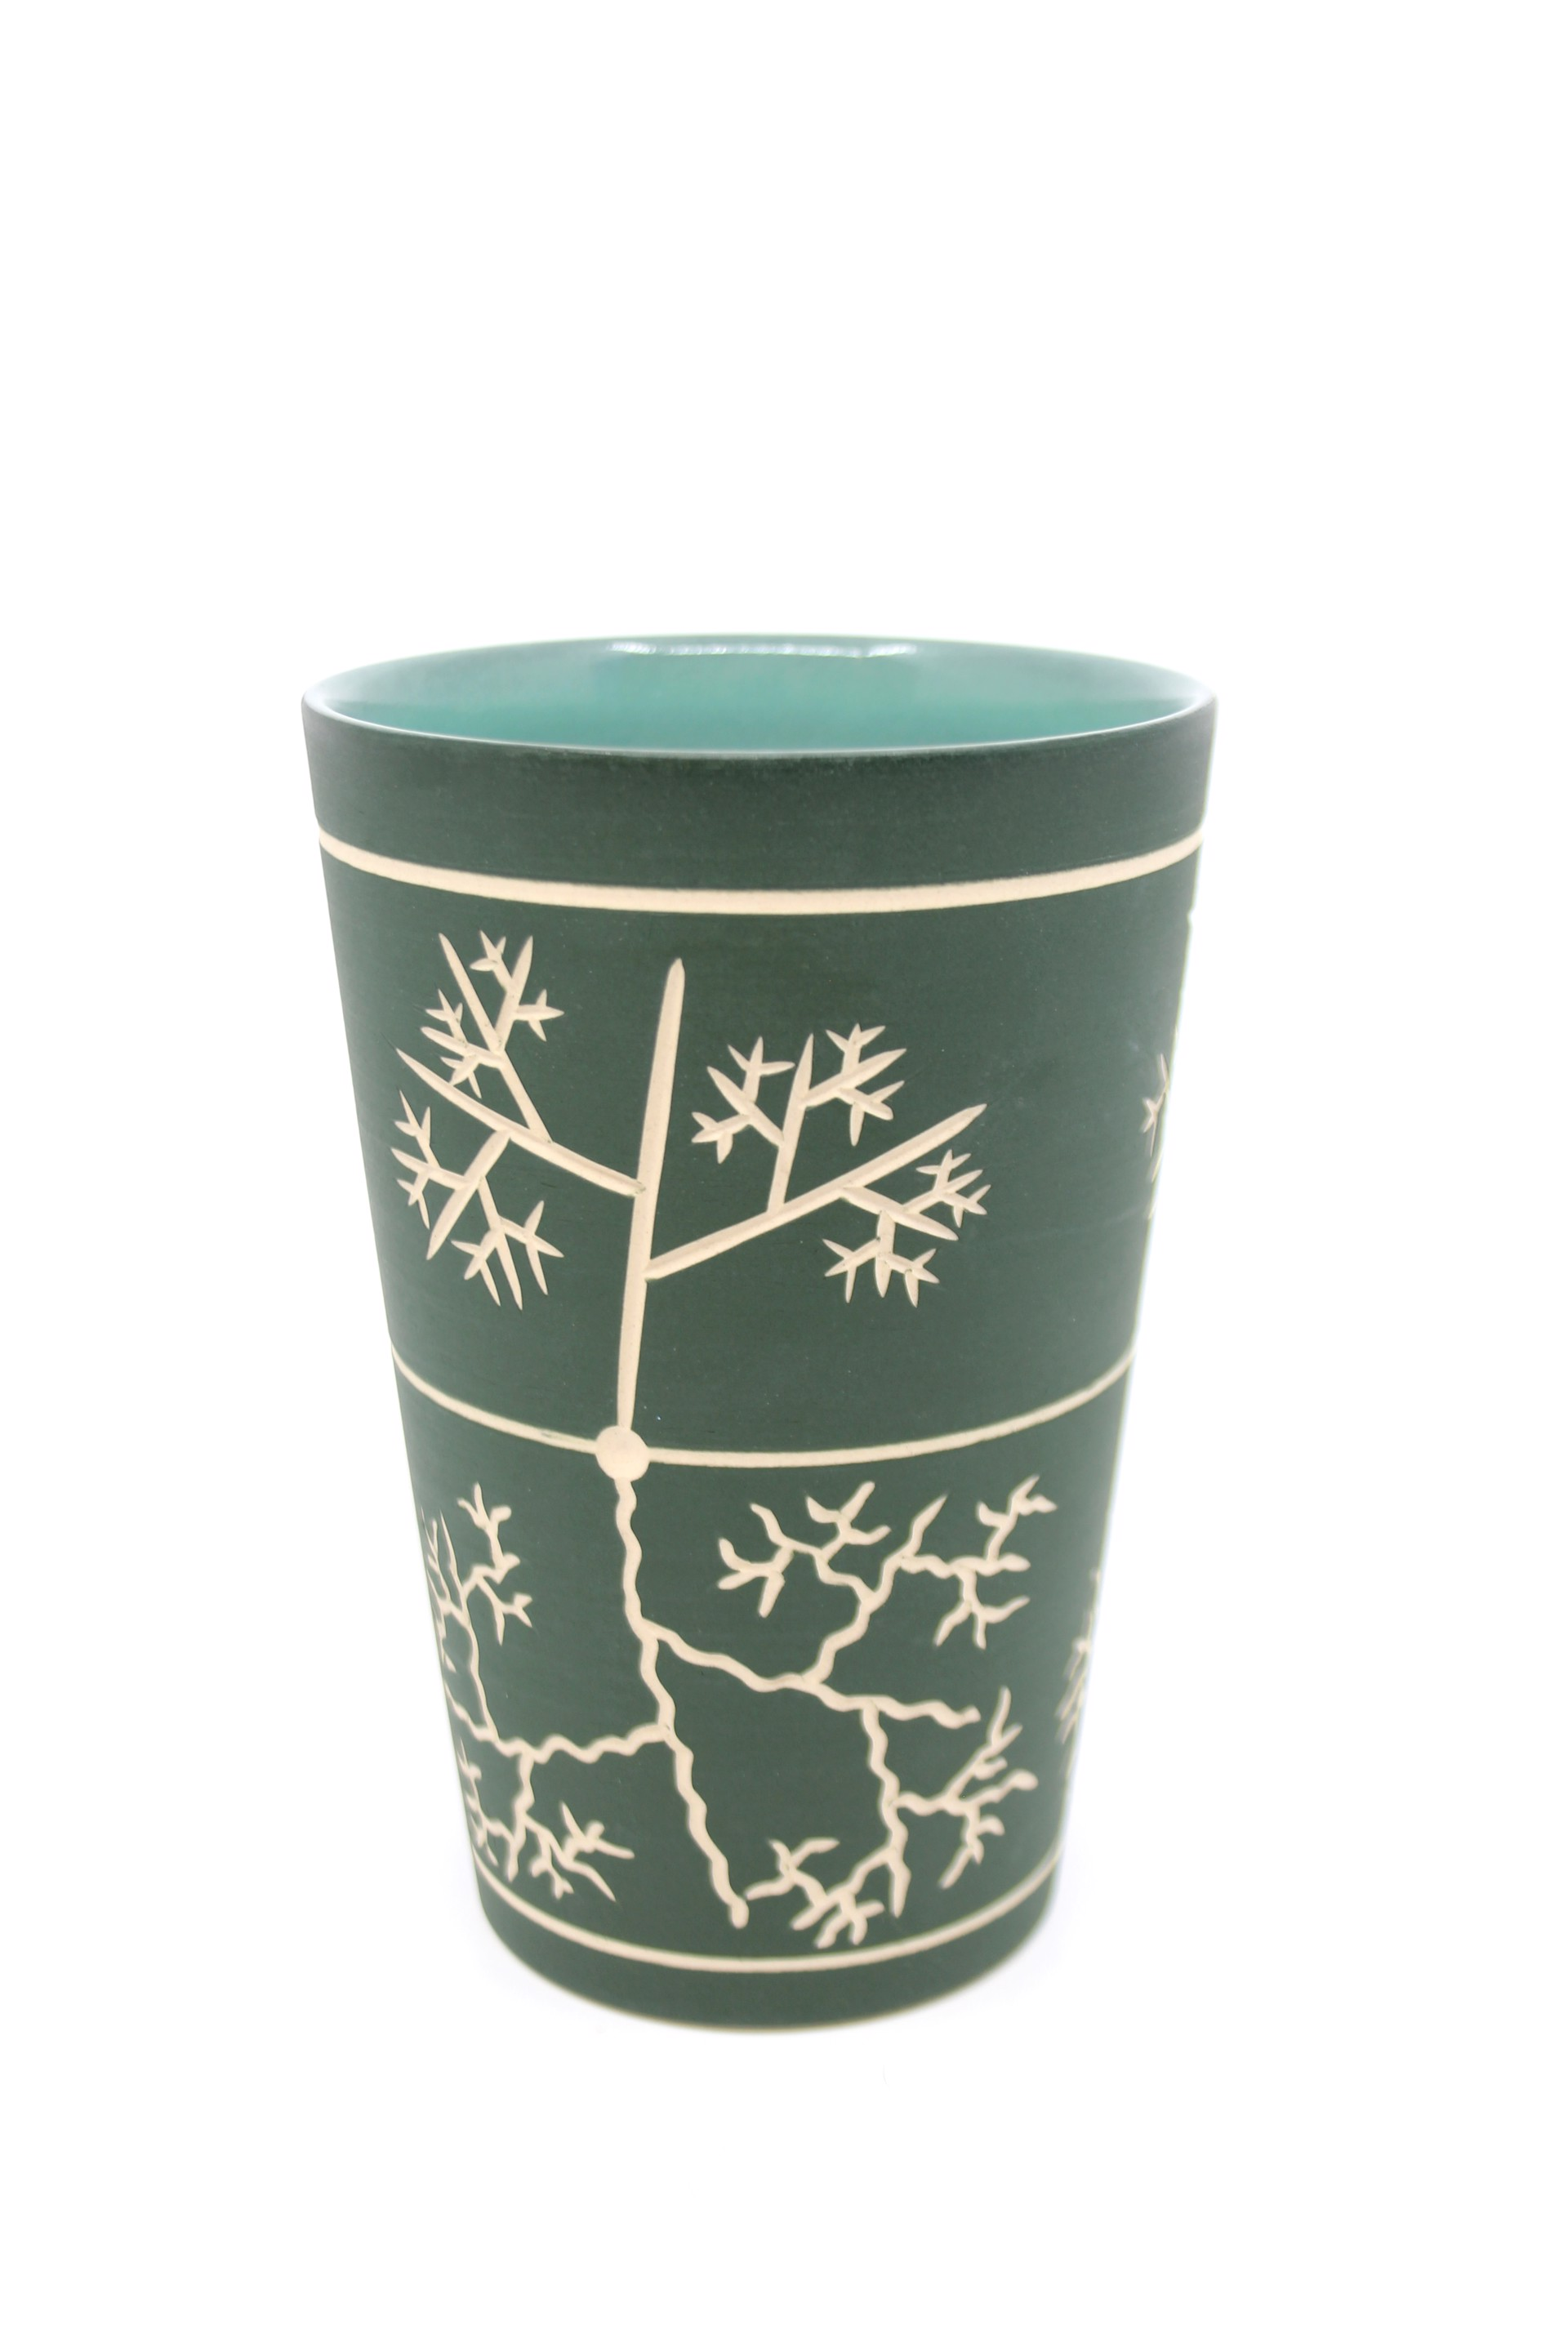 Forest Green Tall Cup by Chris Casey